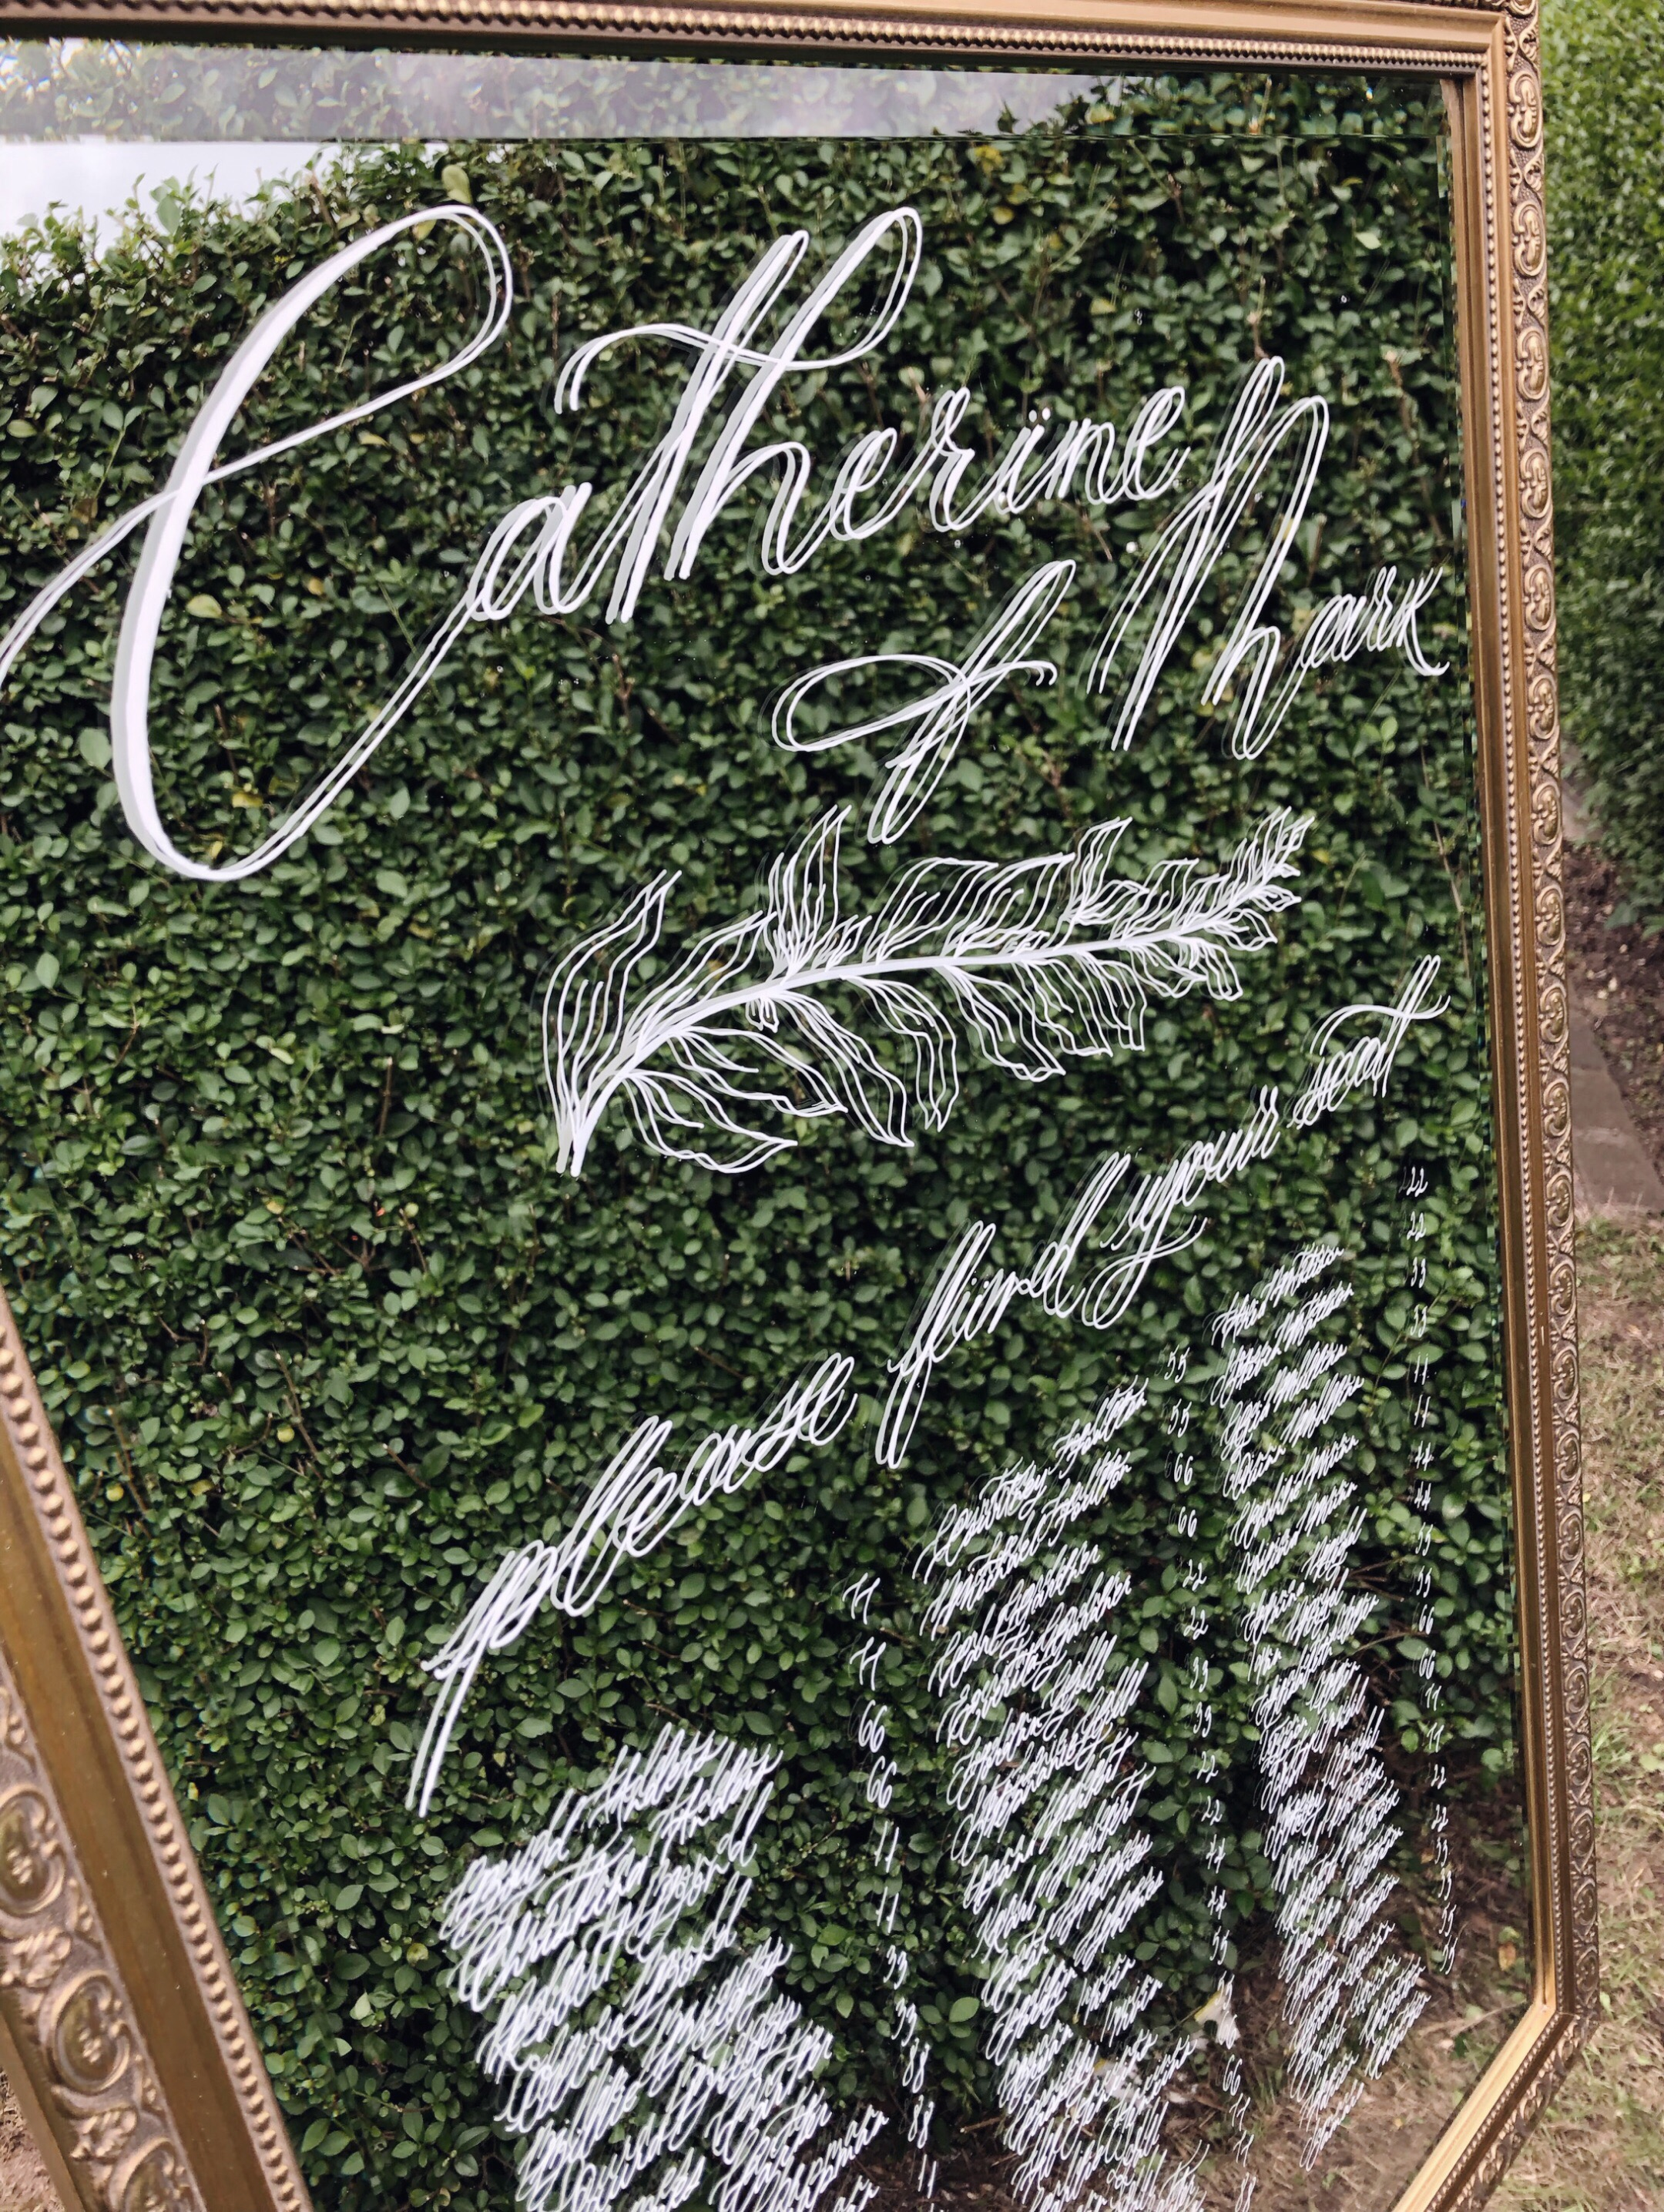 Handwritten mirror sign for a wedding